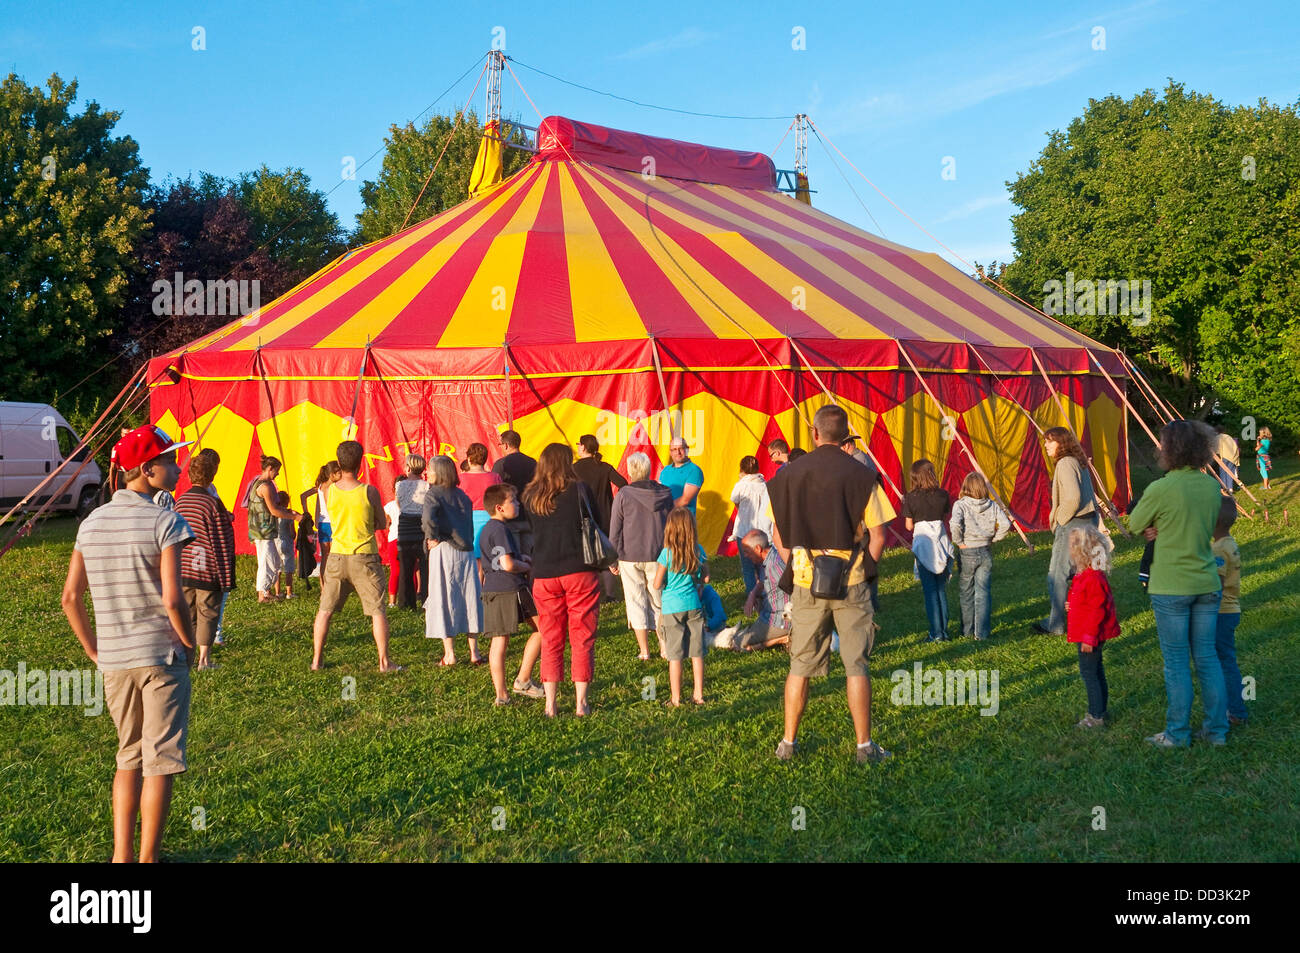 Striped yellow and red circus tent with crowd